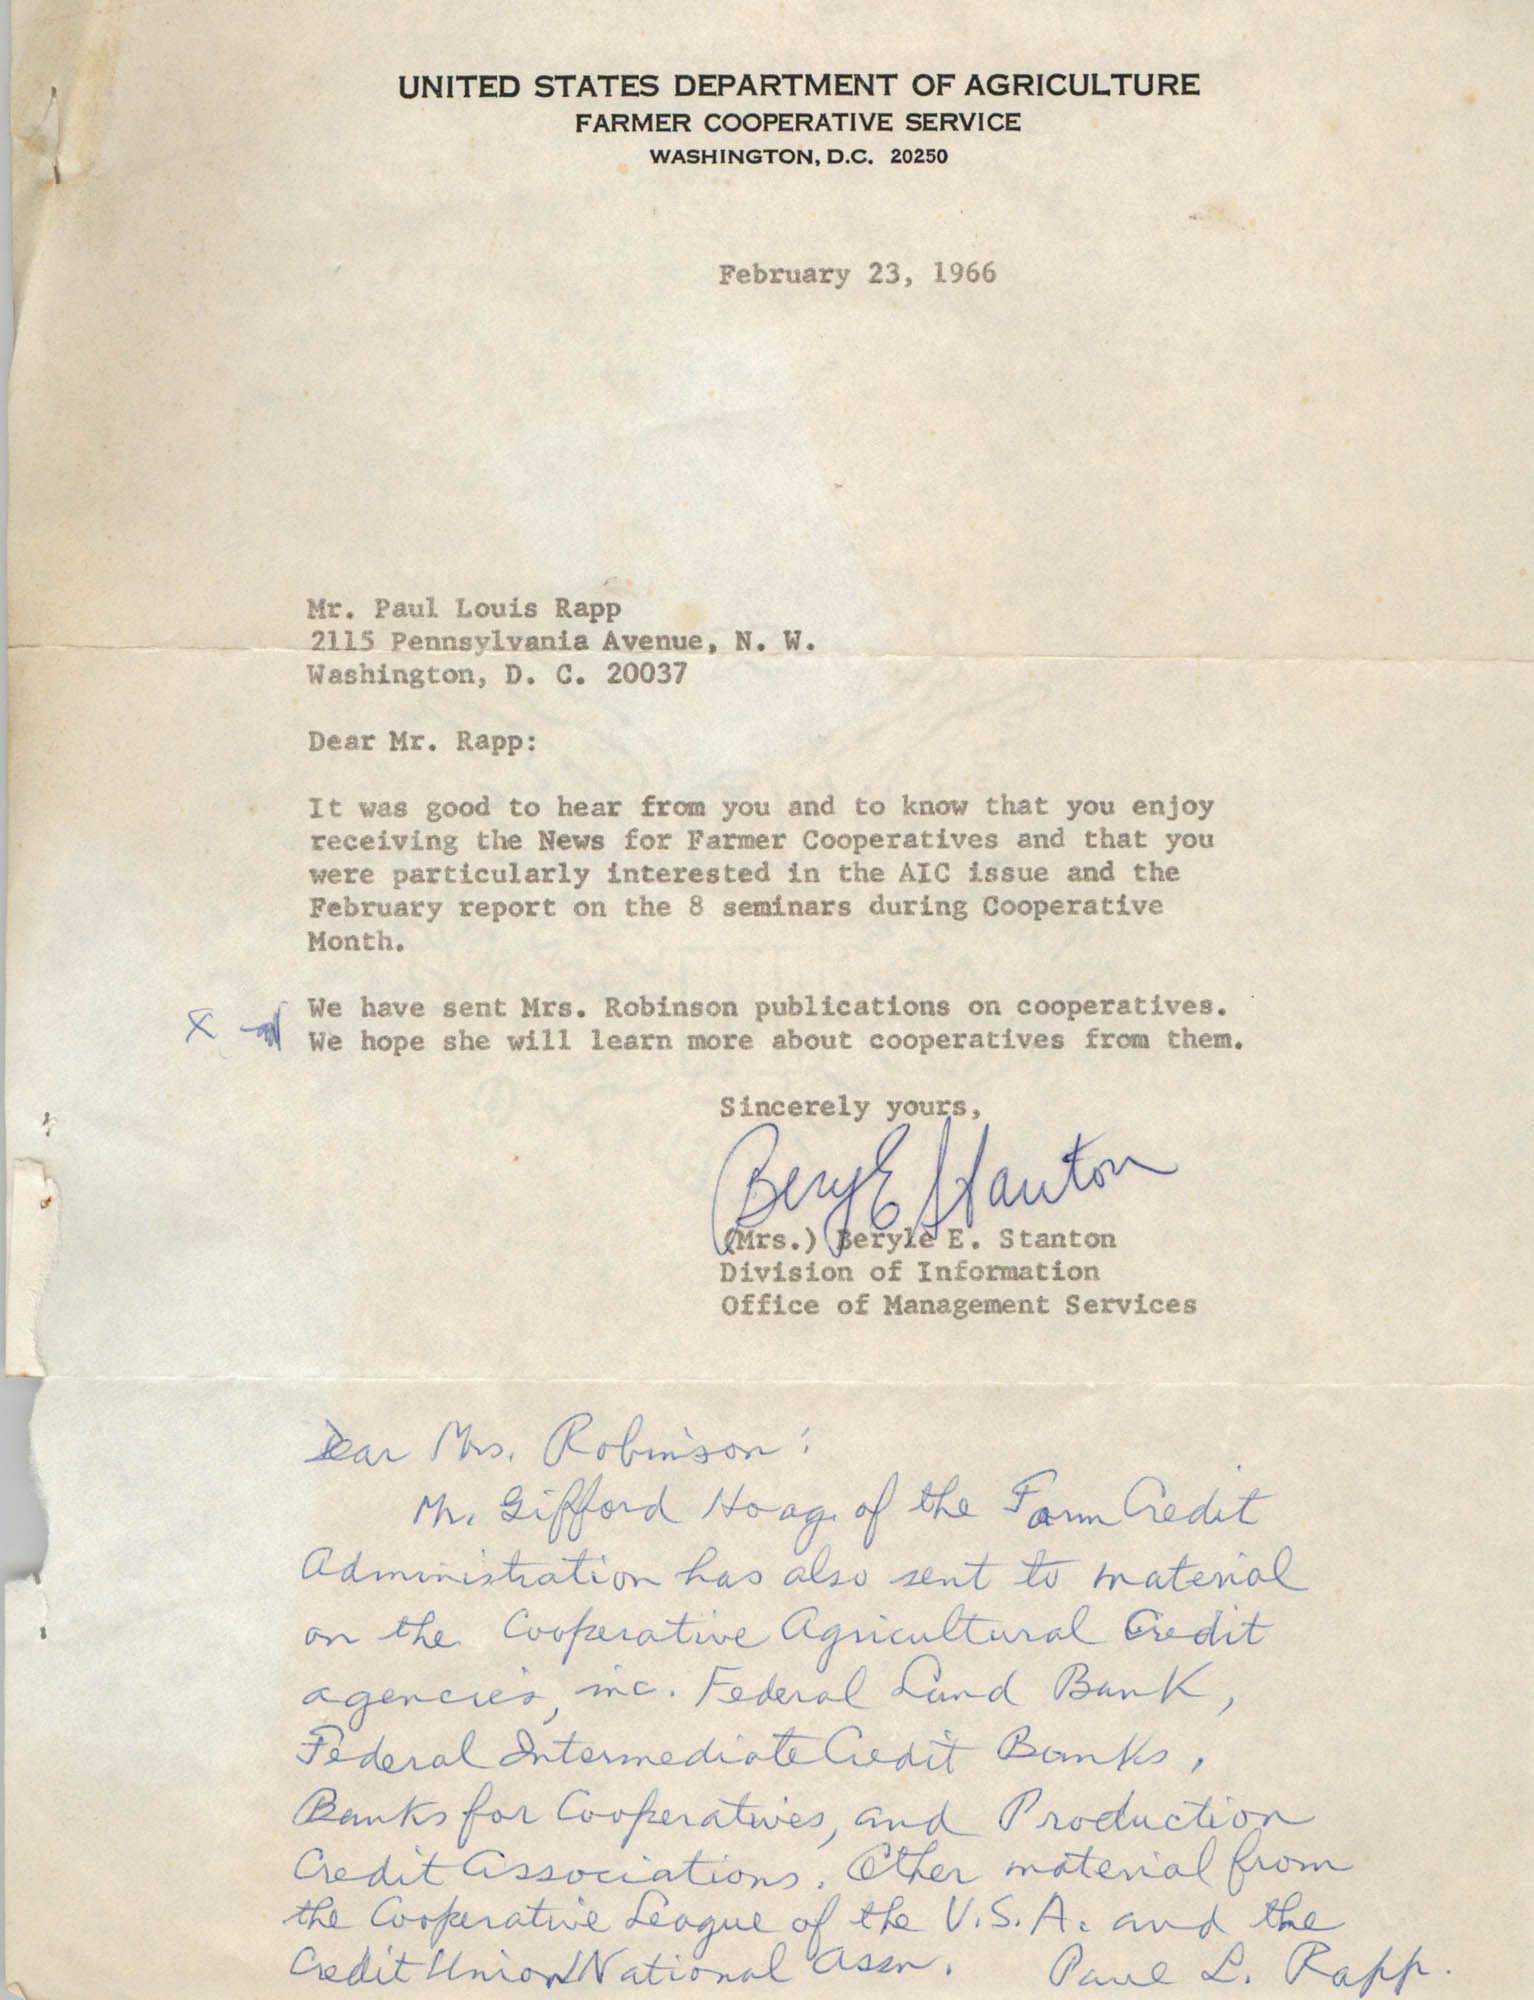 Letter from Paul Louis Rapp to Bernice Robinson, February 23, 1966